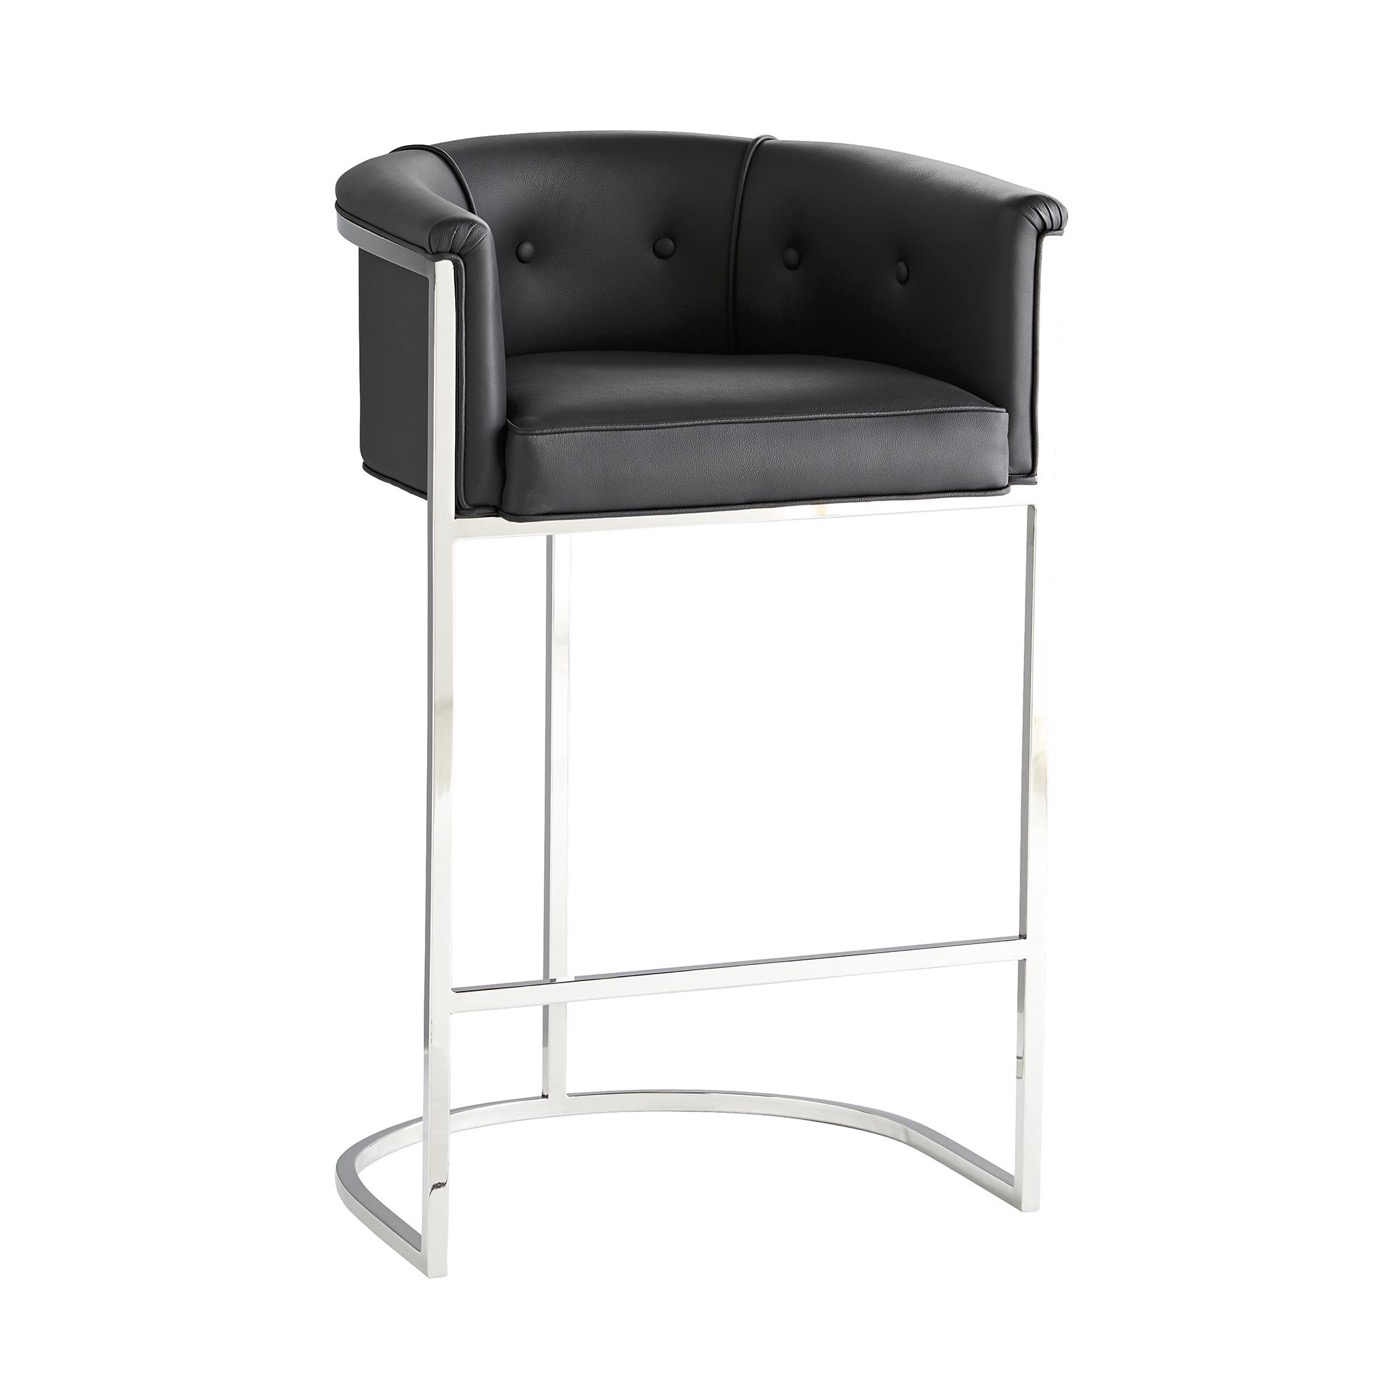 Sensational Klein Leather Bar Stool W Back Black Spiritservingveterans Wood Chair Design Ideas Spiritservingveteransorg